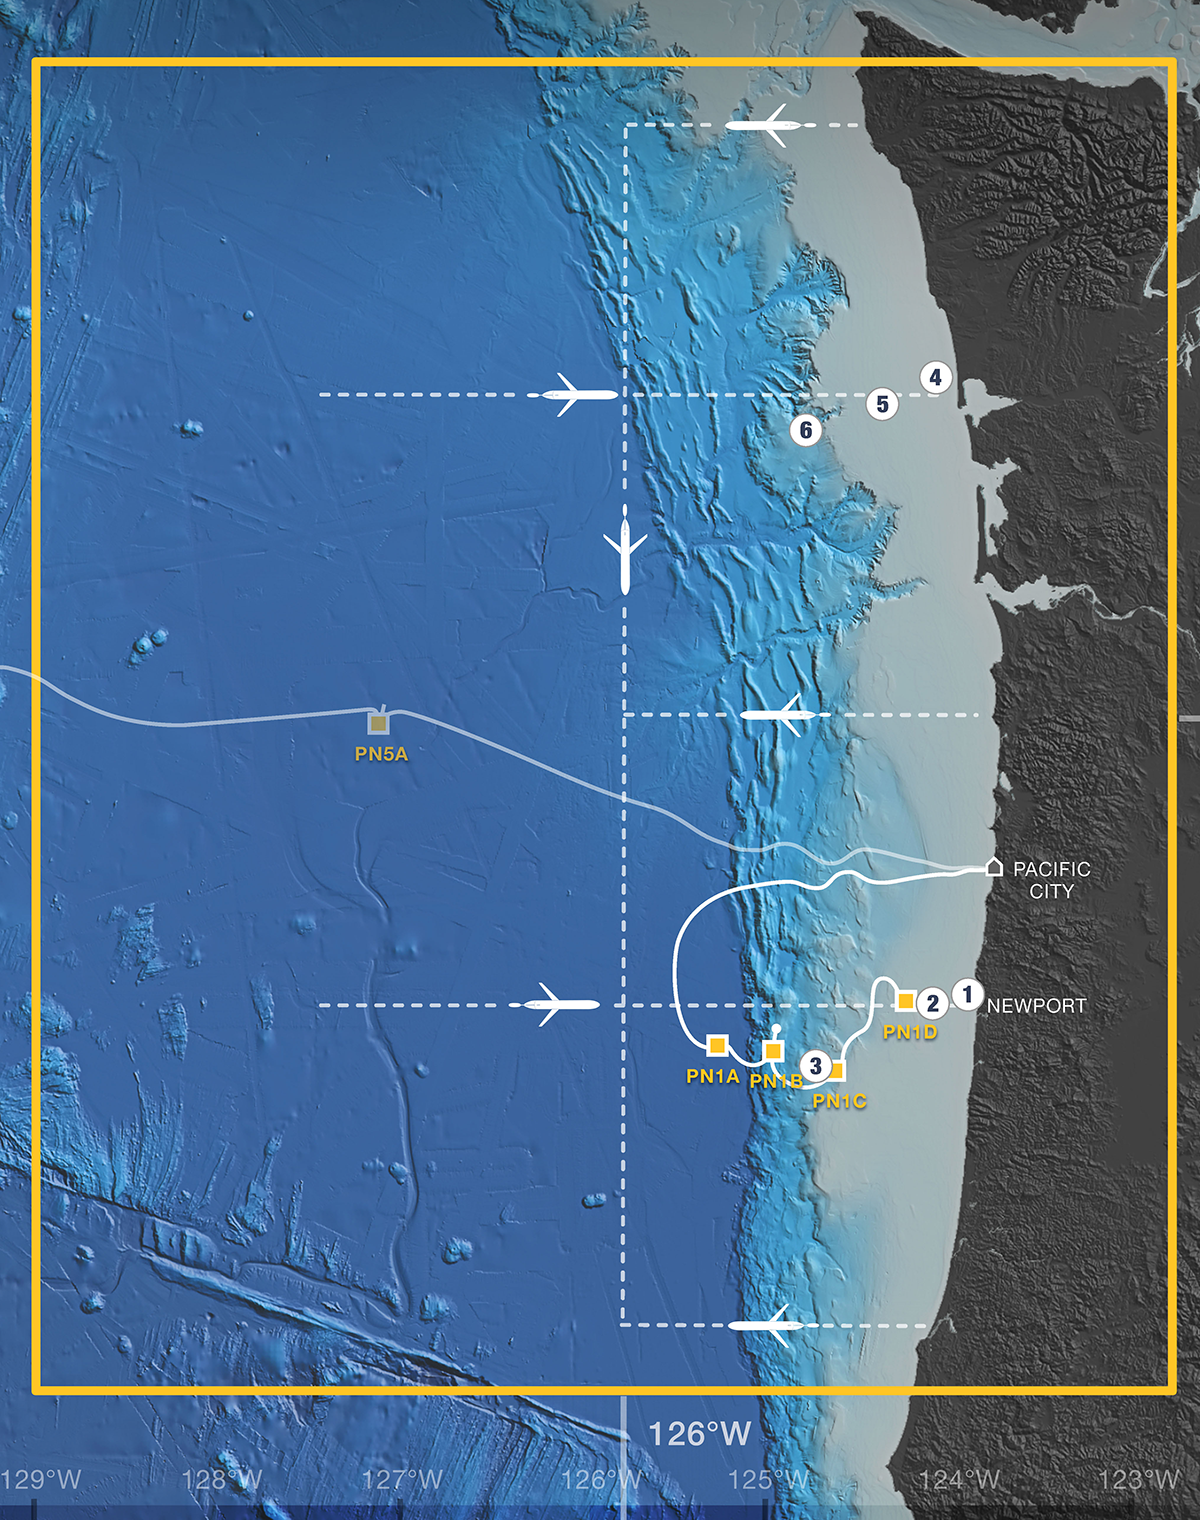 OOI Coastal Endurance Array, located off the coast of Oregon and Washington